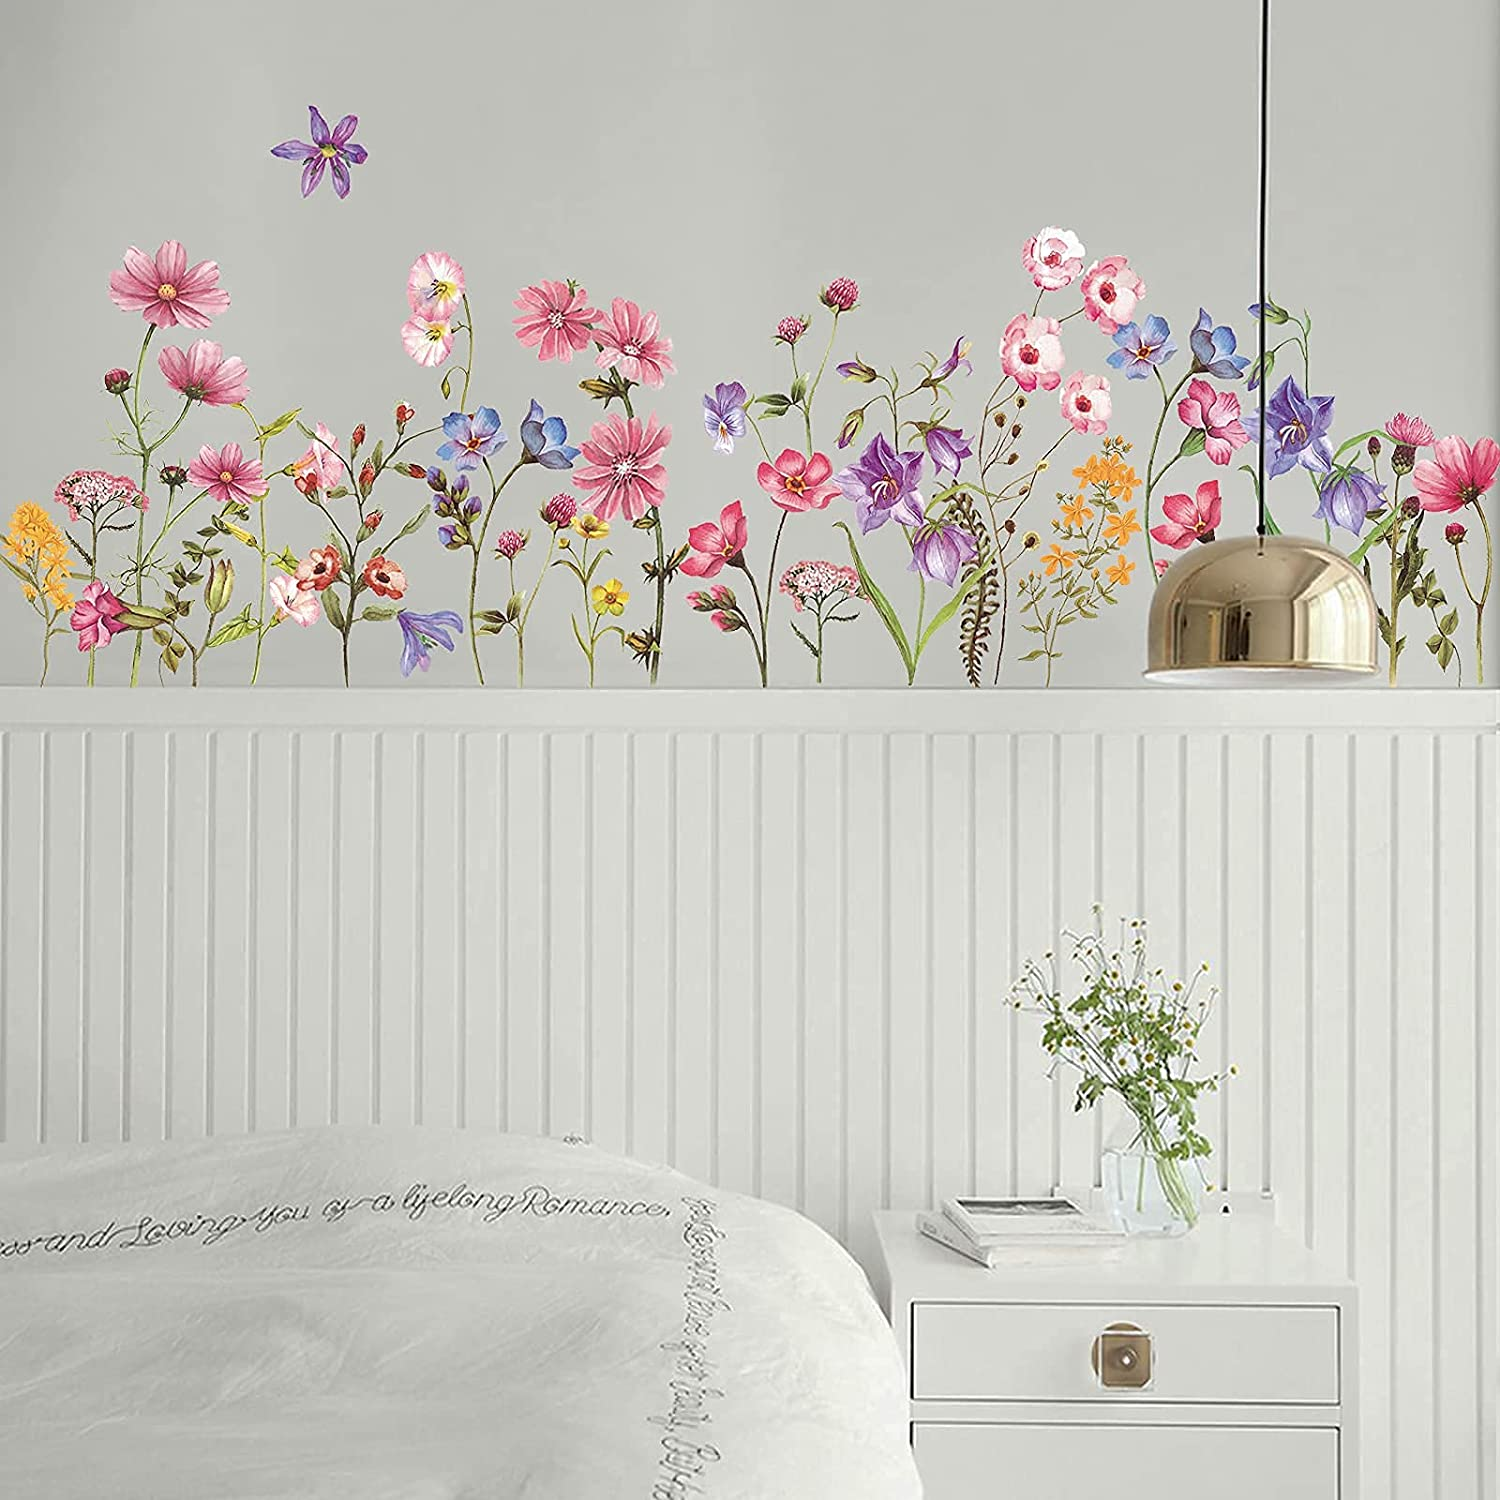 Colorful Flowers Vine Wall Stickers Spring Garden Floral Wall Decals Removable DIY Peel and Stick Art Murals for Bedroom Living Room Nursery Classroom Kids Room Bathroom Home Decoration(Flower)